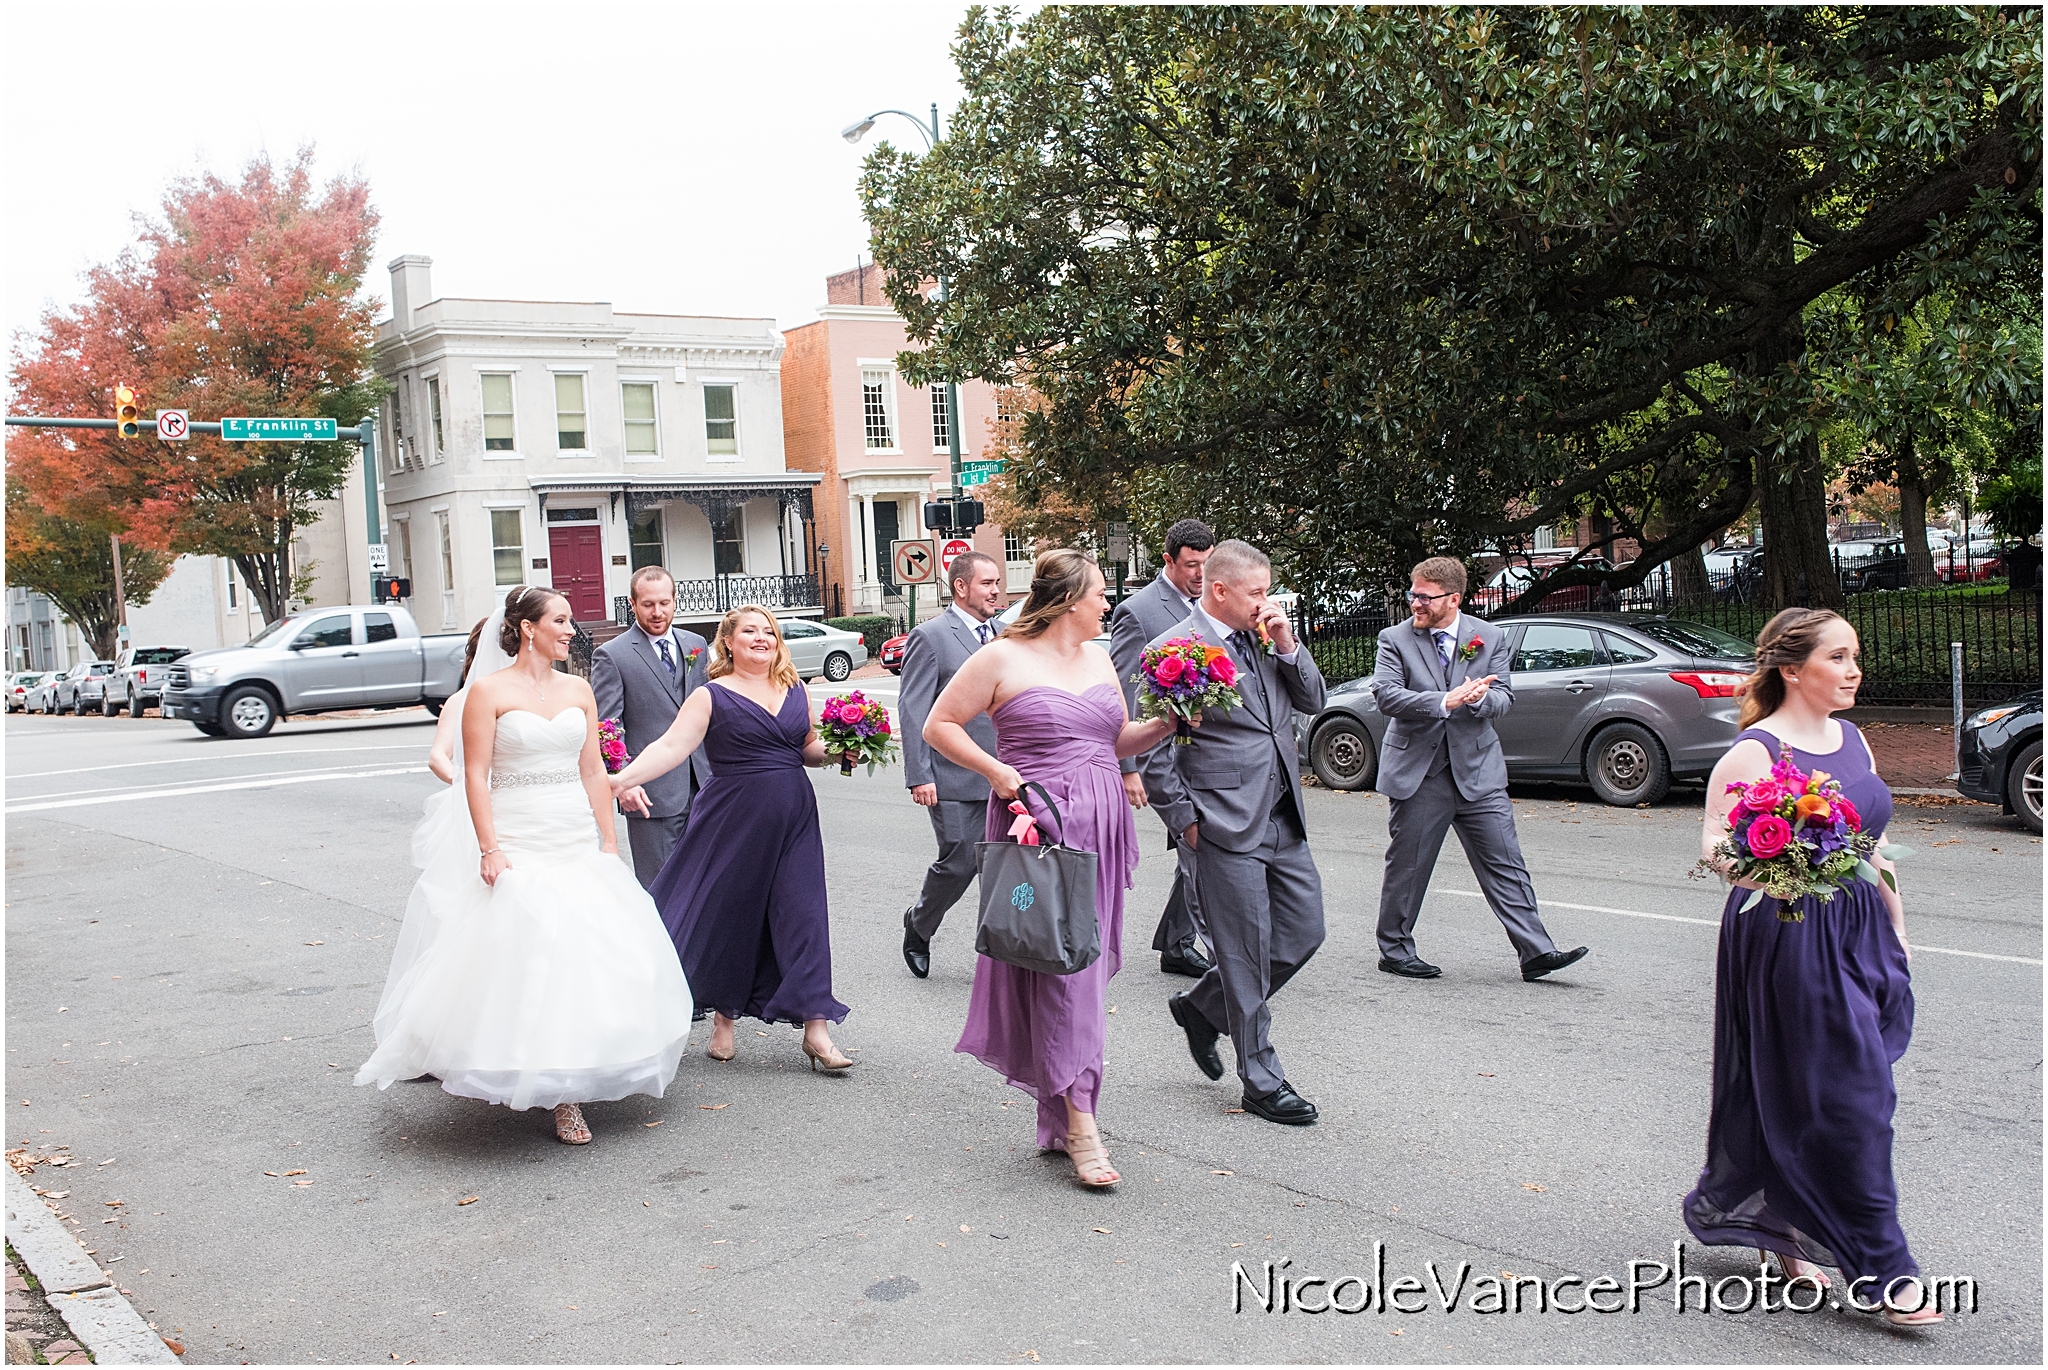 The bridal party heads to the trolley to travel to the wedding ceremony at the Church.